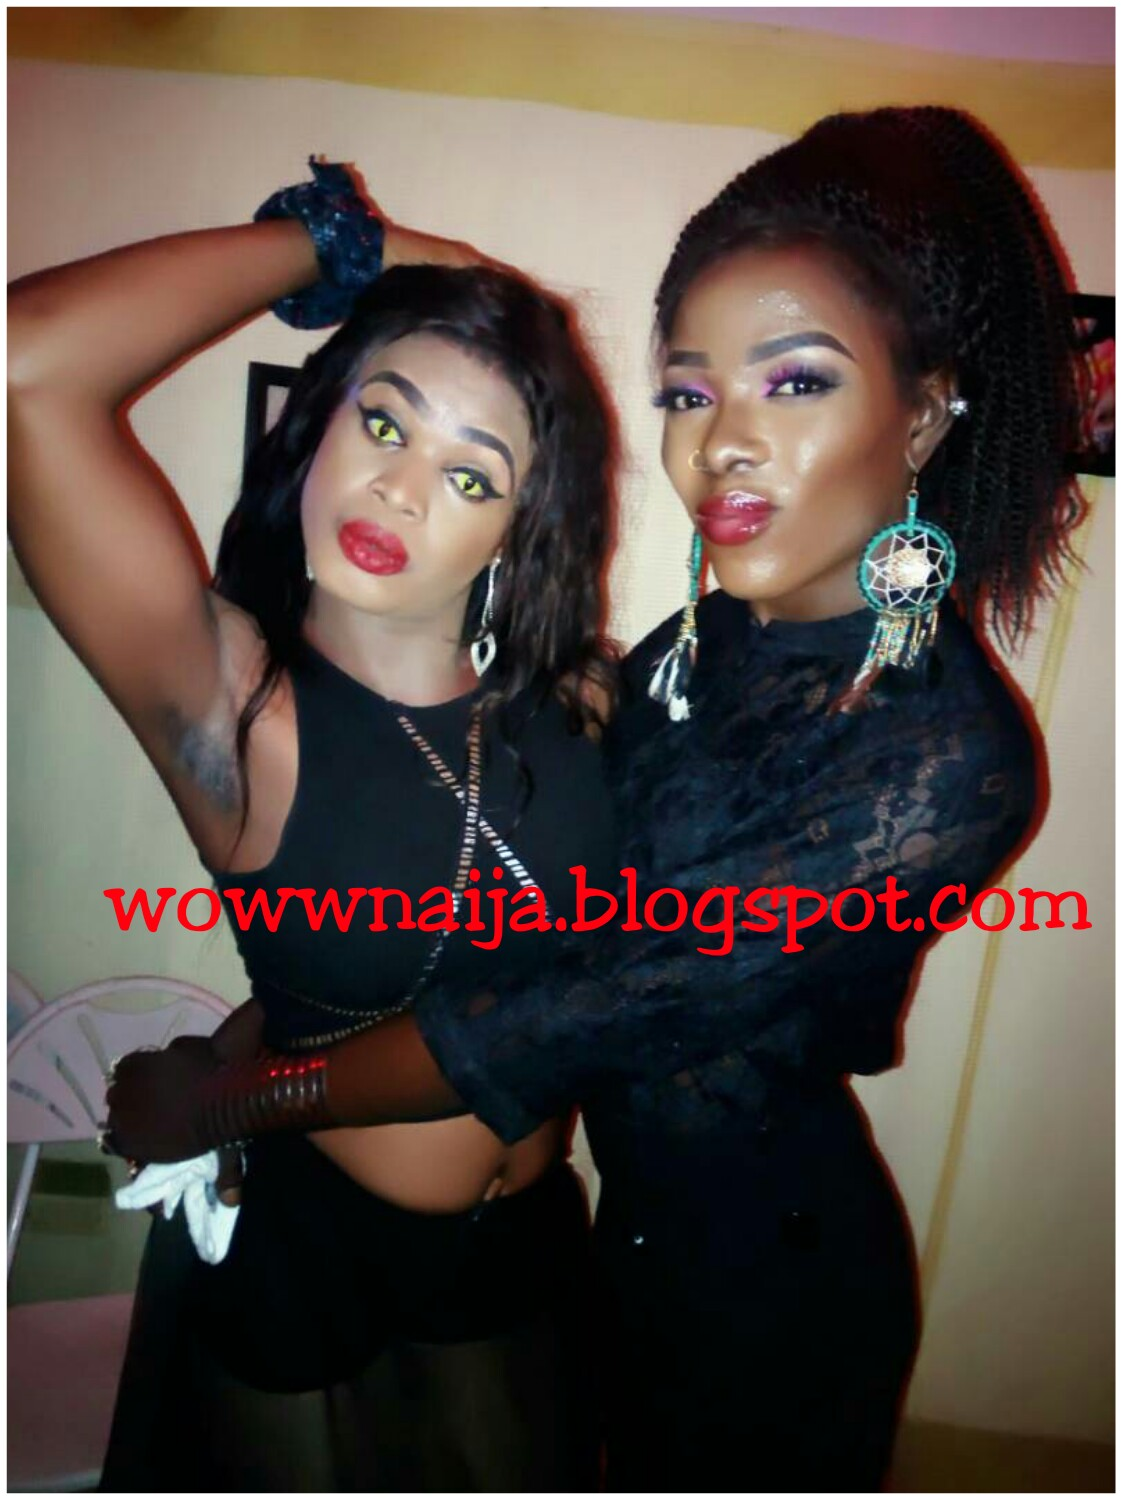 7561bfaaf4 Welcome To Woww! Naija  CHECK OUT THE LATEST CROSS-DRESSERS IN TOWN